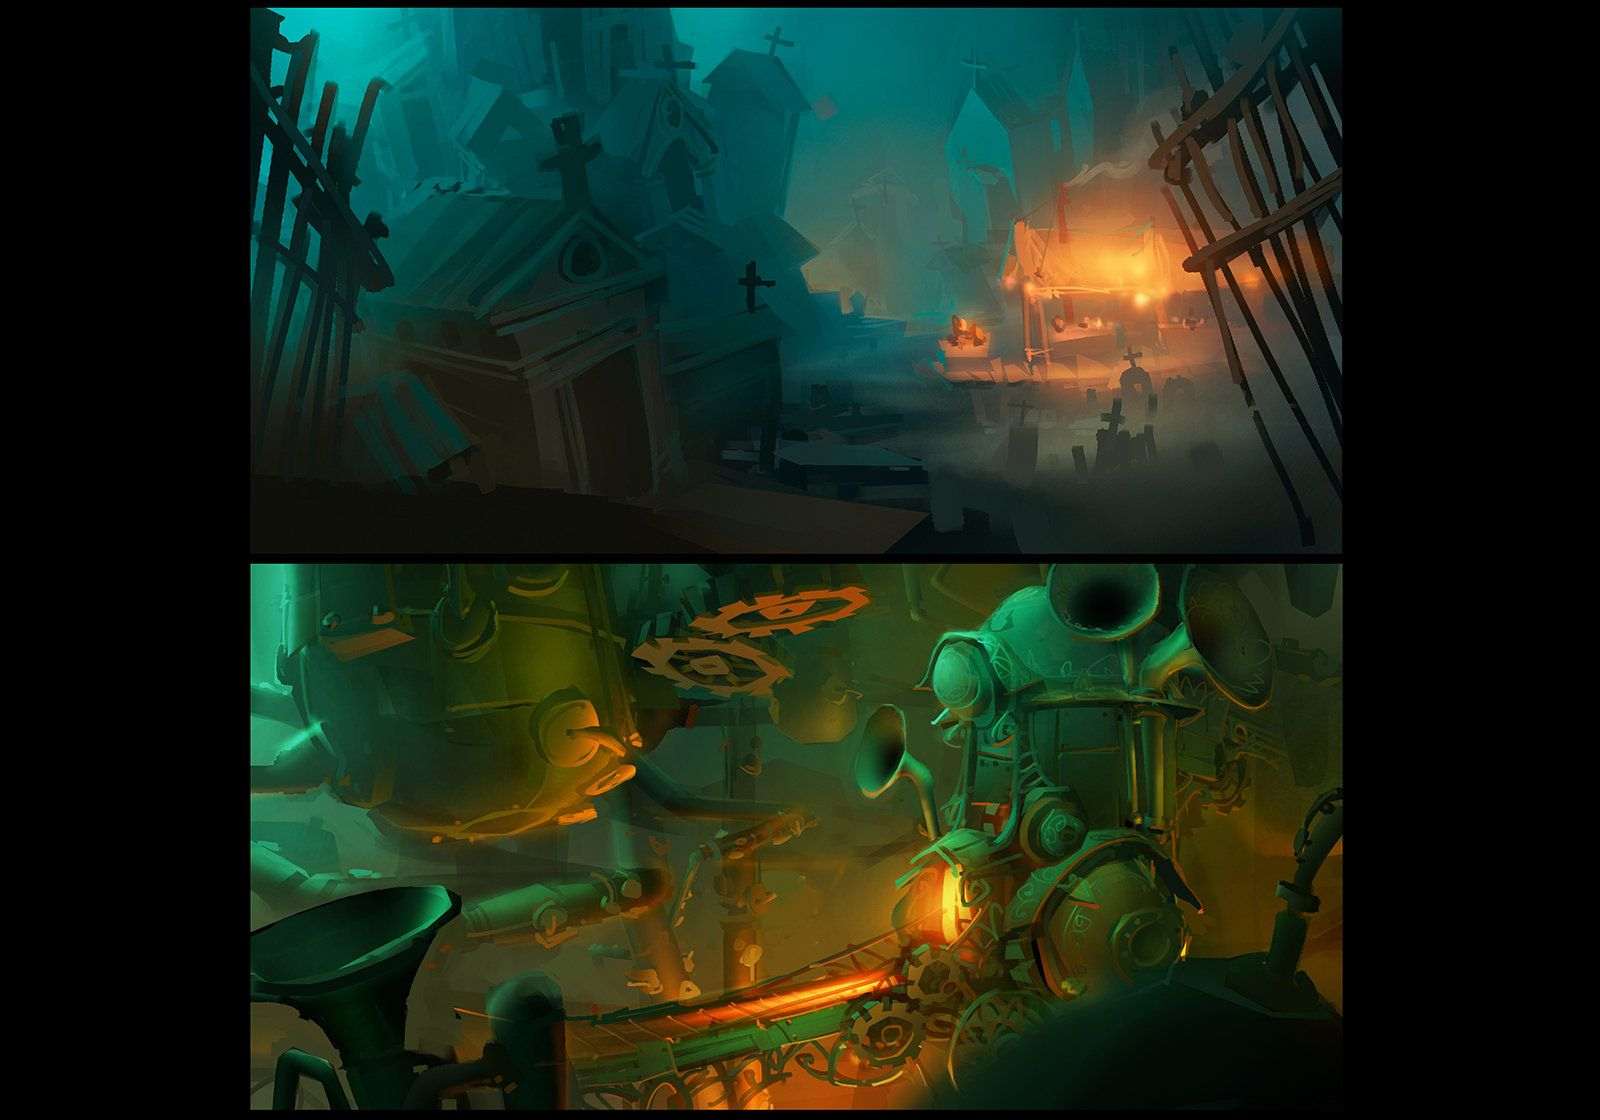 Filme Rayman within rayman origins, jean-brice dugait on artstation at http://www